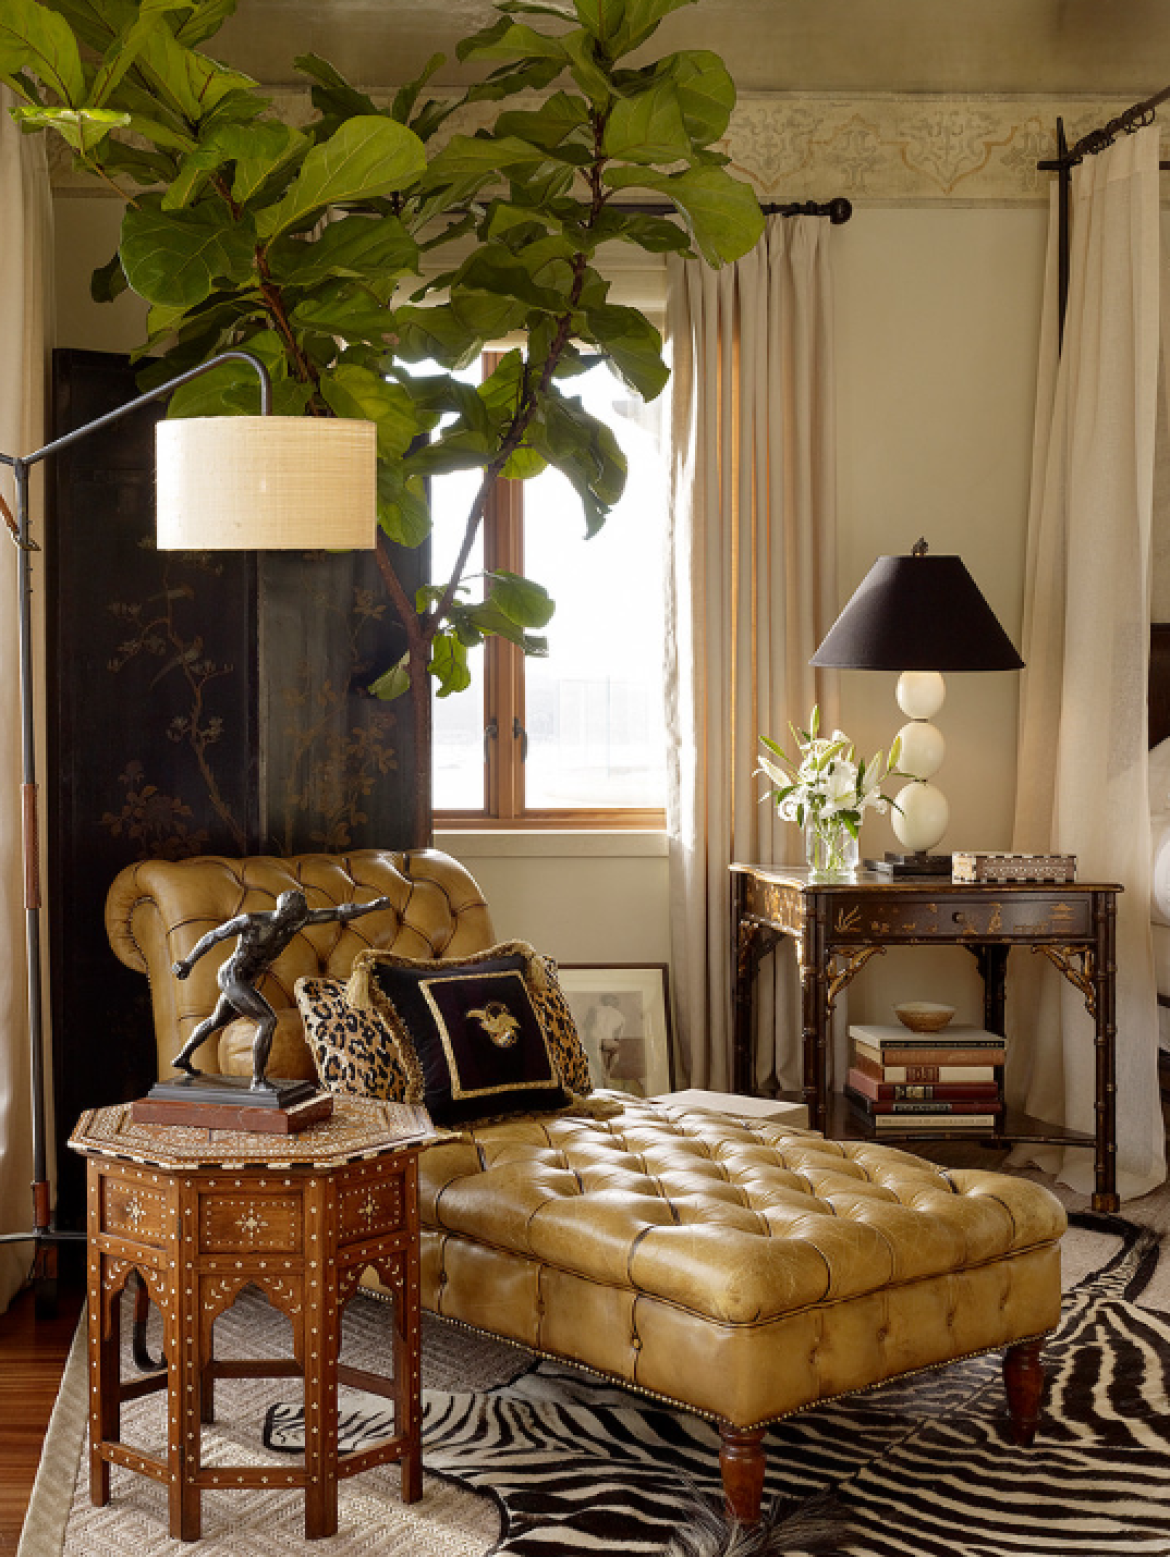 Antique And Modern Furniture Together talie jane interiors » decorating with antiques: evoke a fanciful